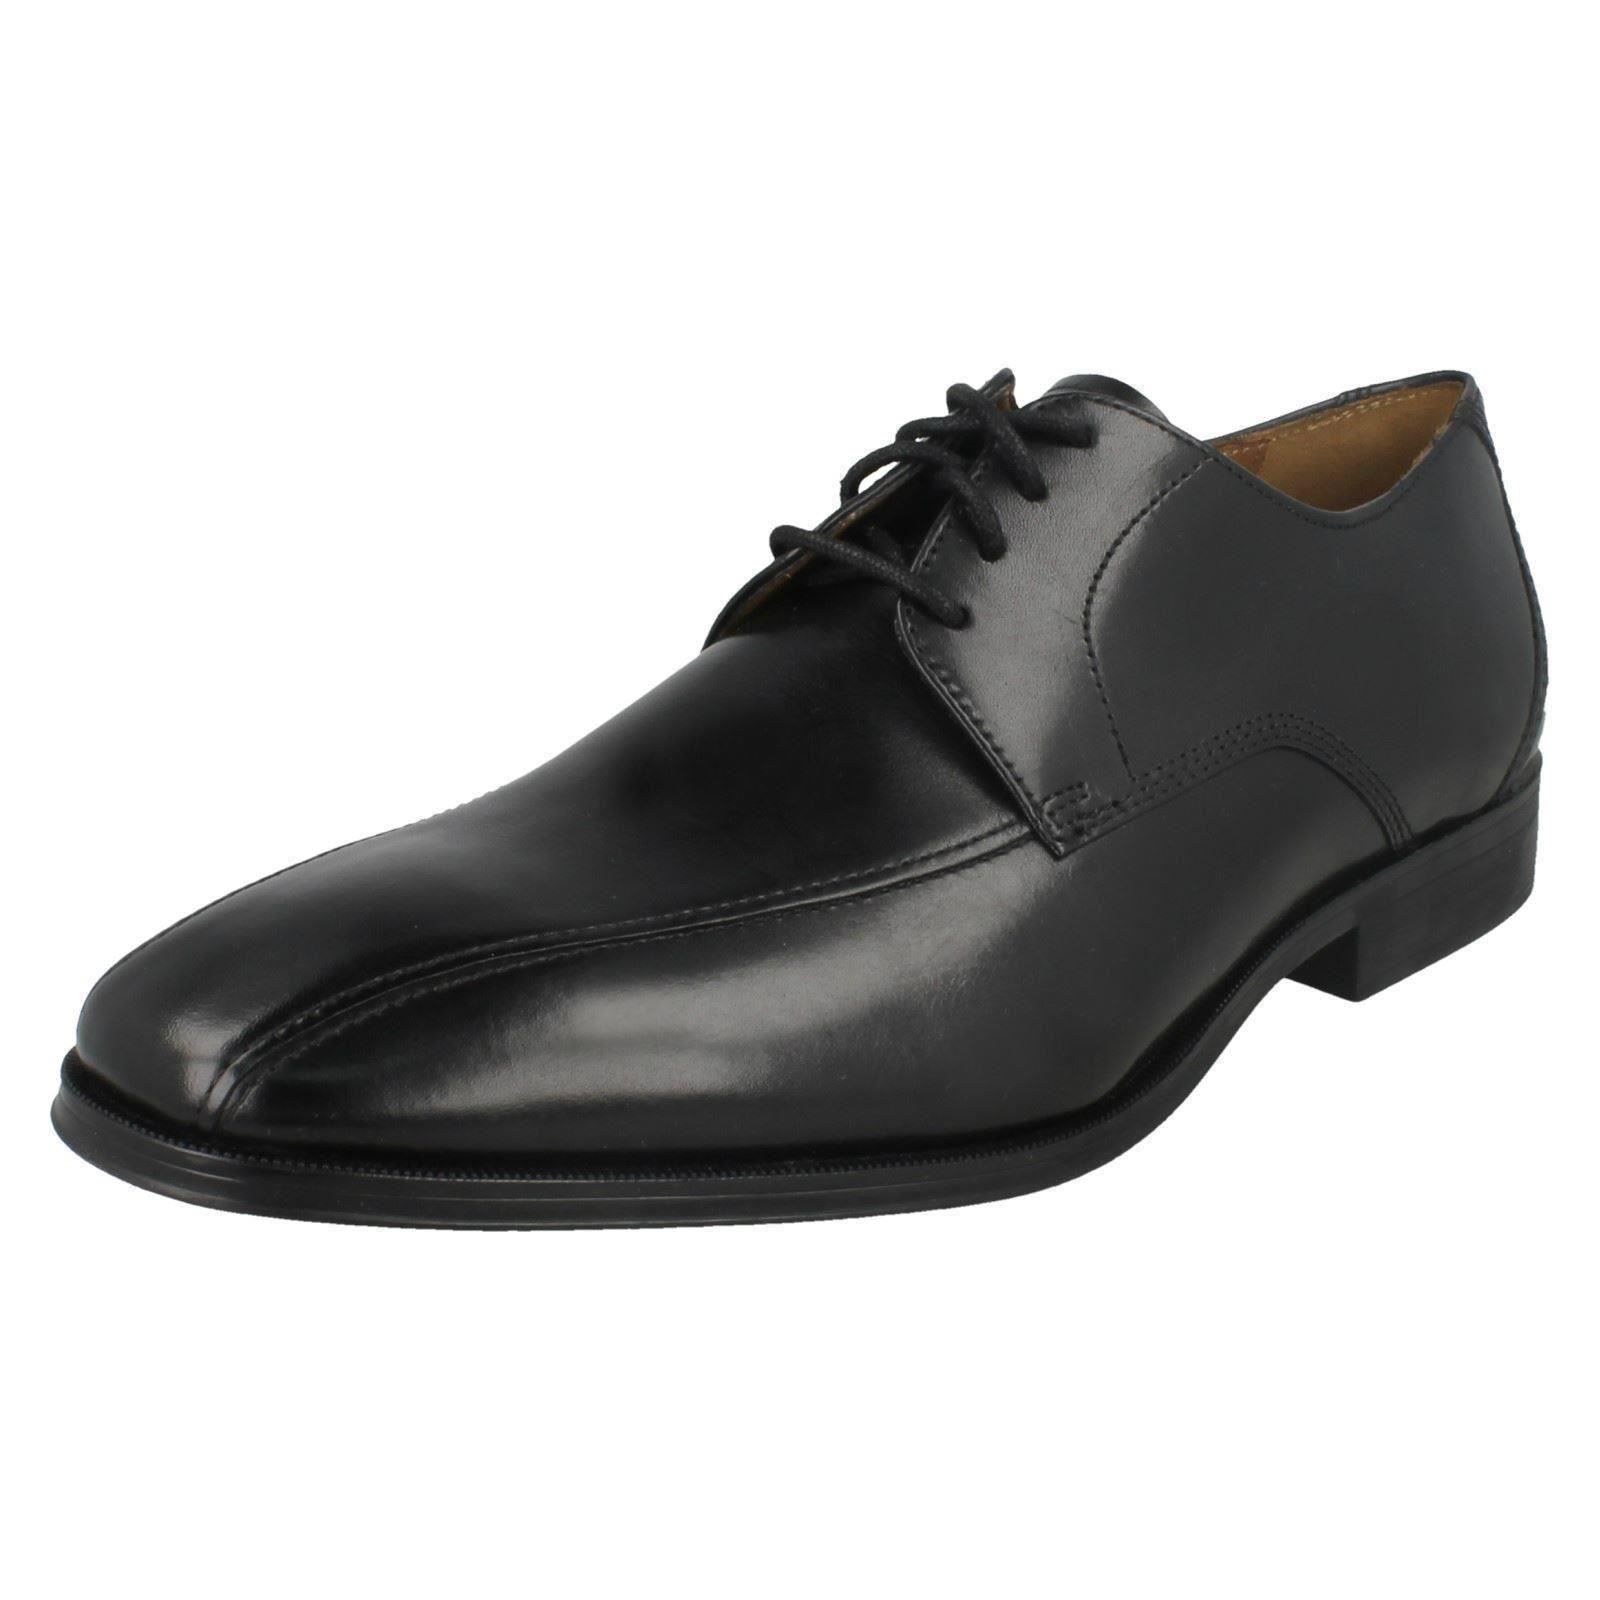 Mens Clarks Formal Lace Up Formal Clarks Schuhes Gilman Mode 93d8b6